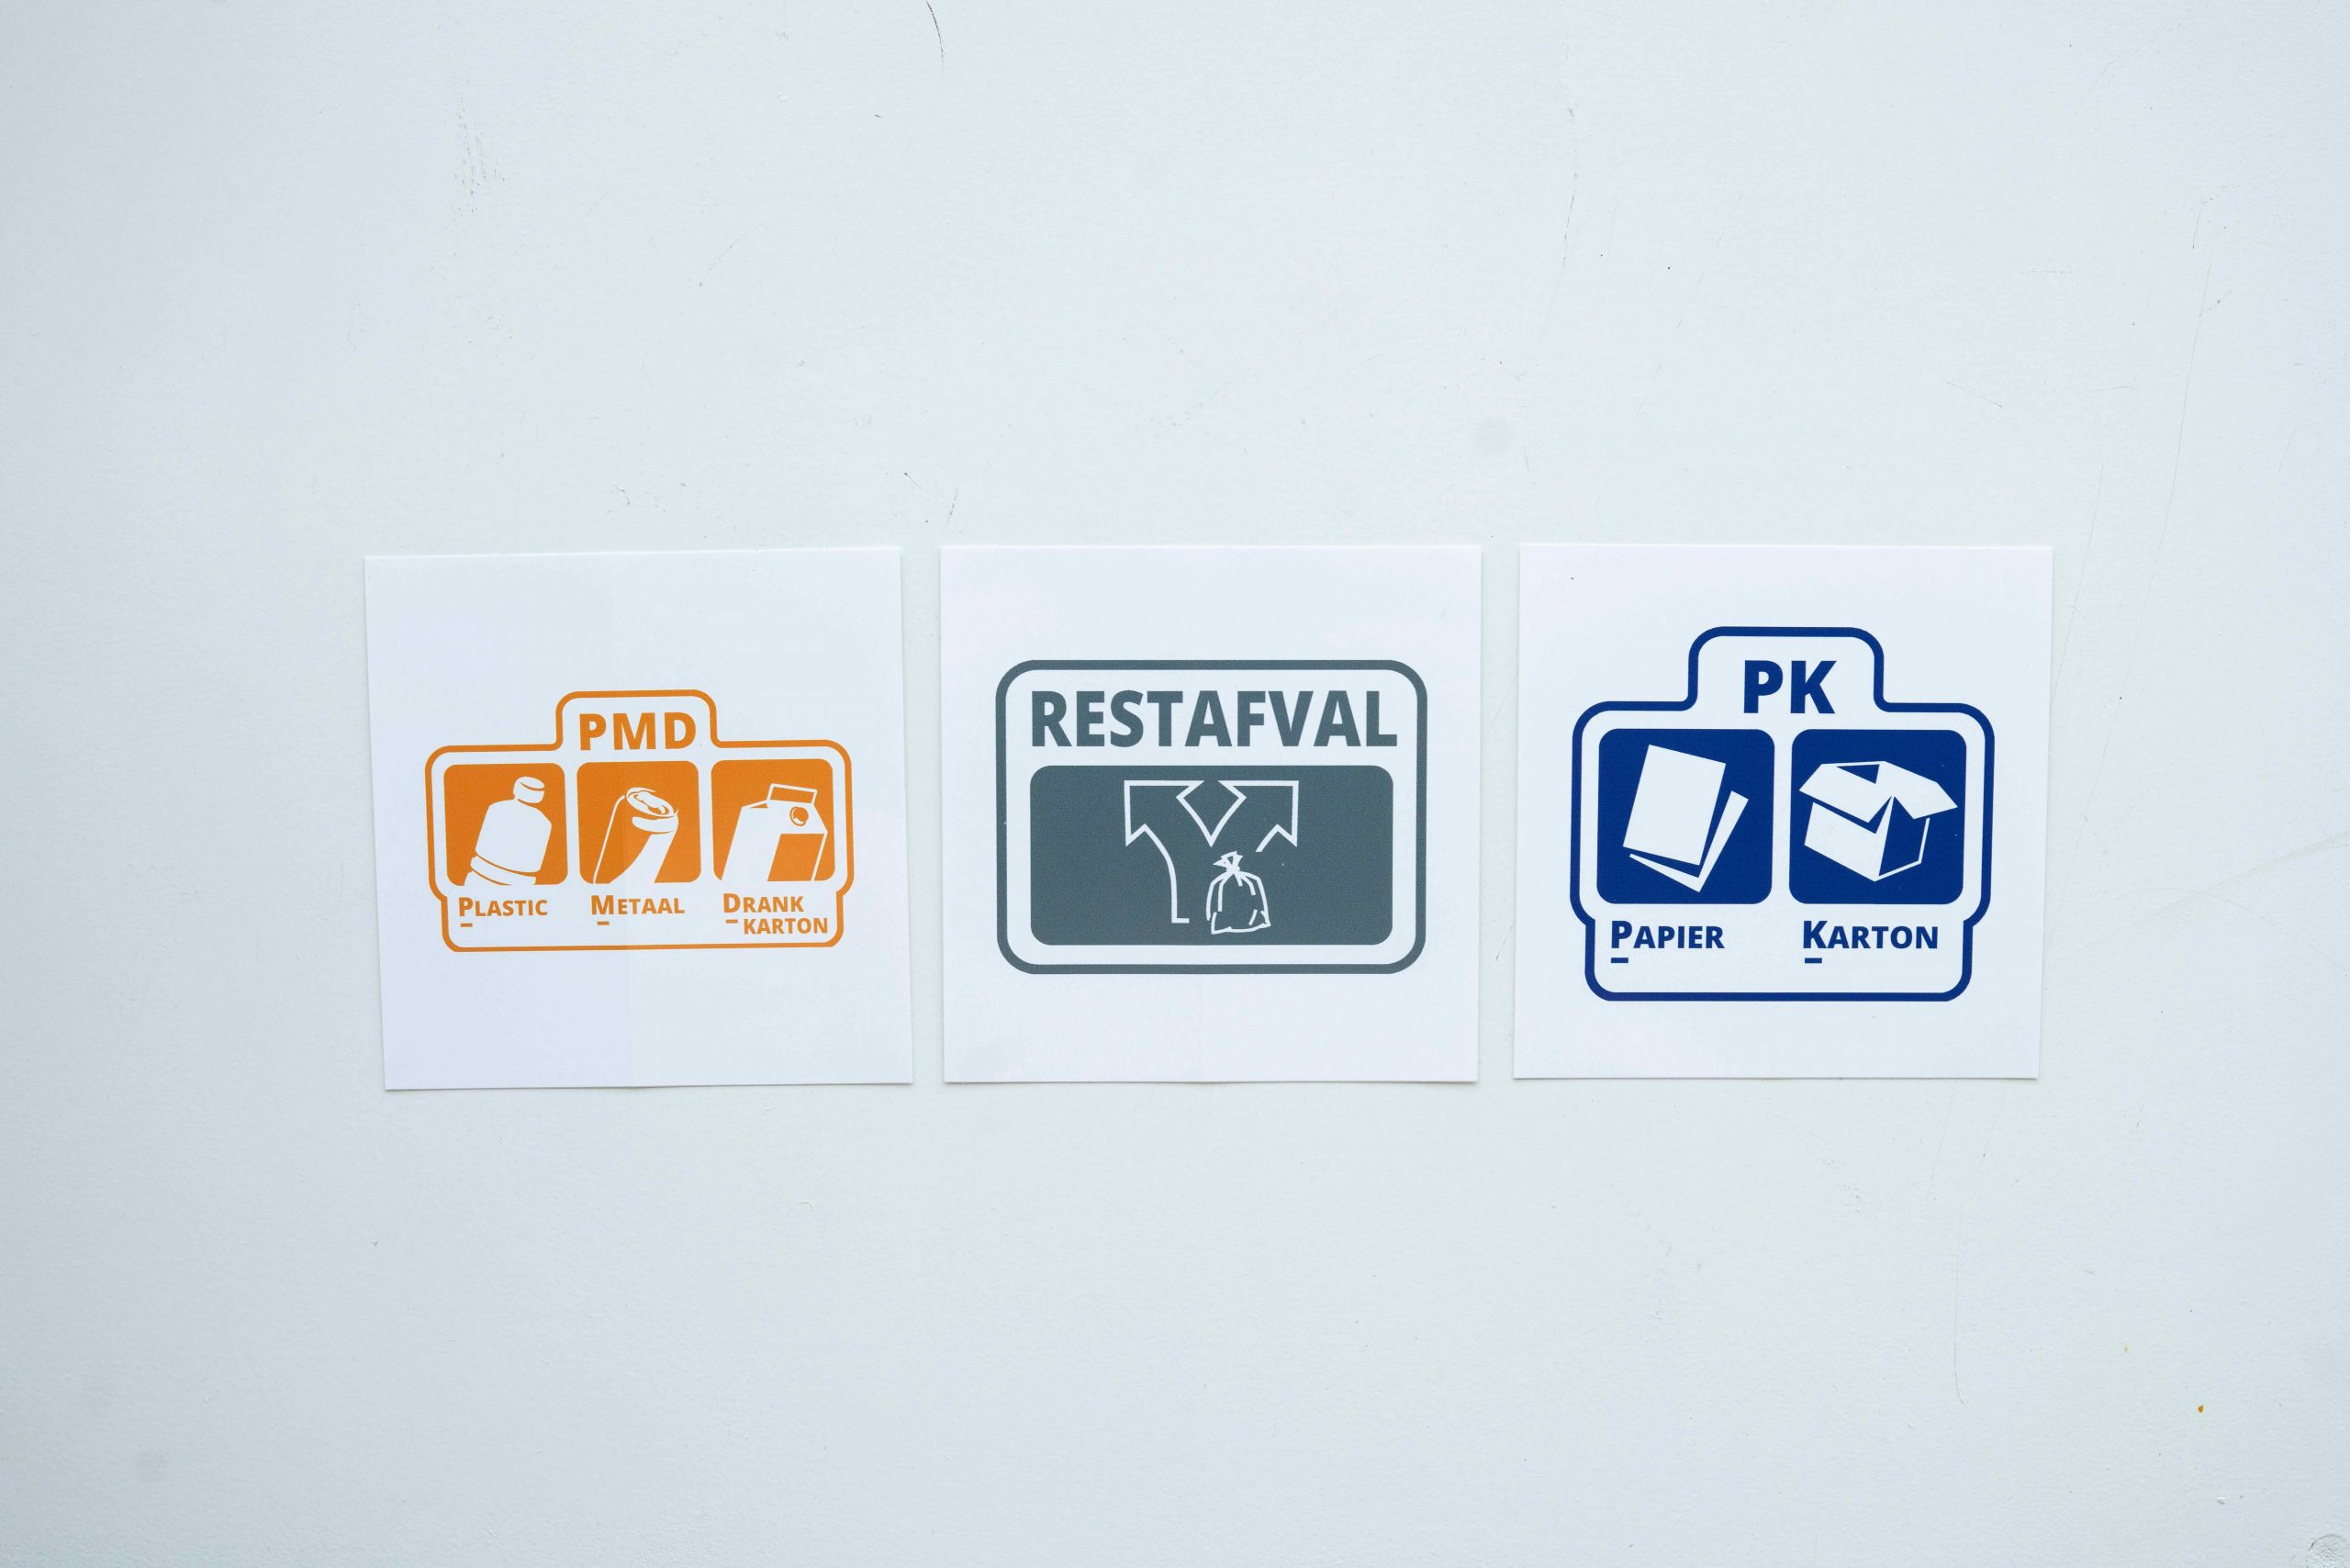 afvalcontainer stickers